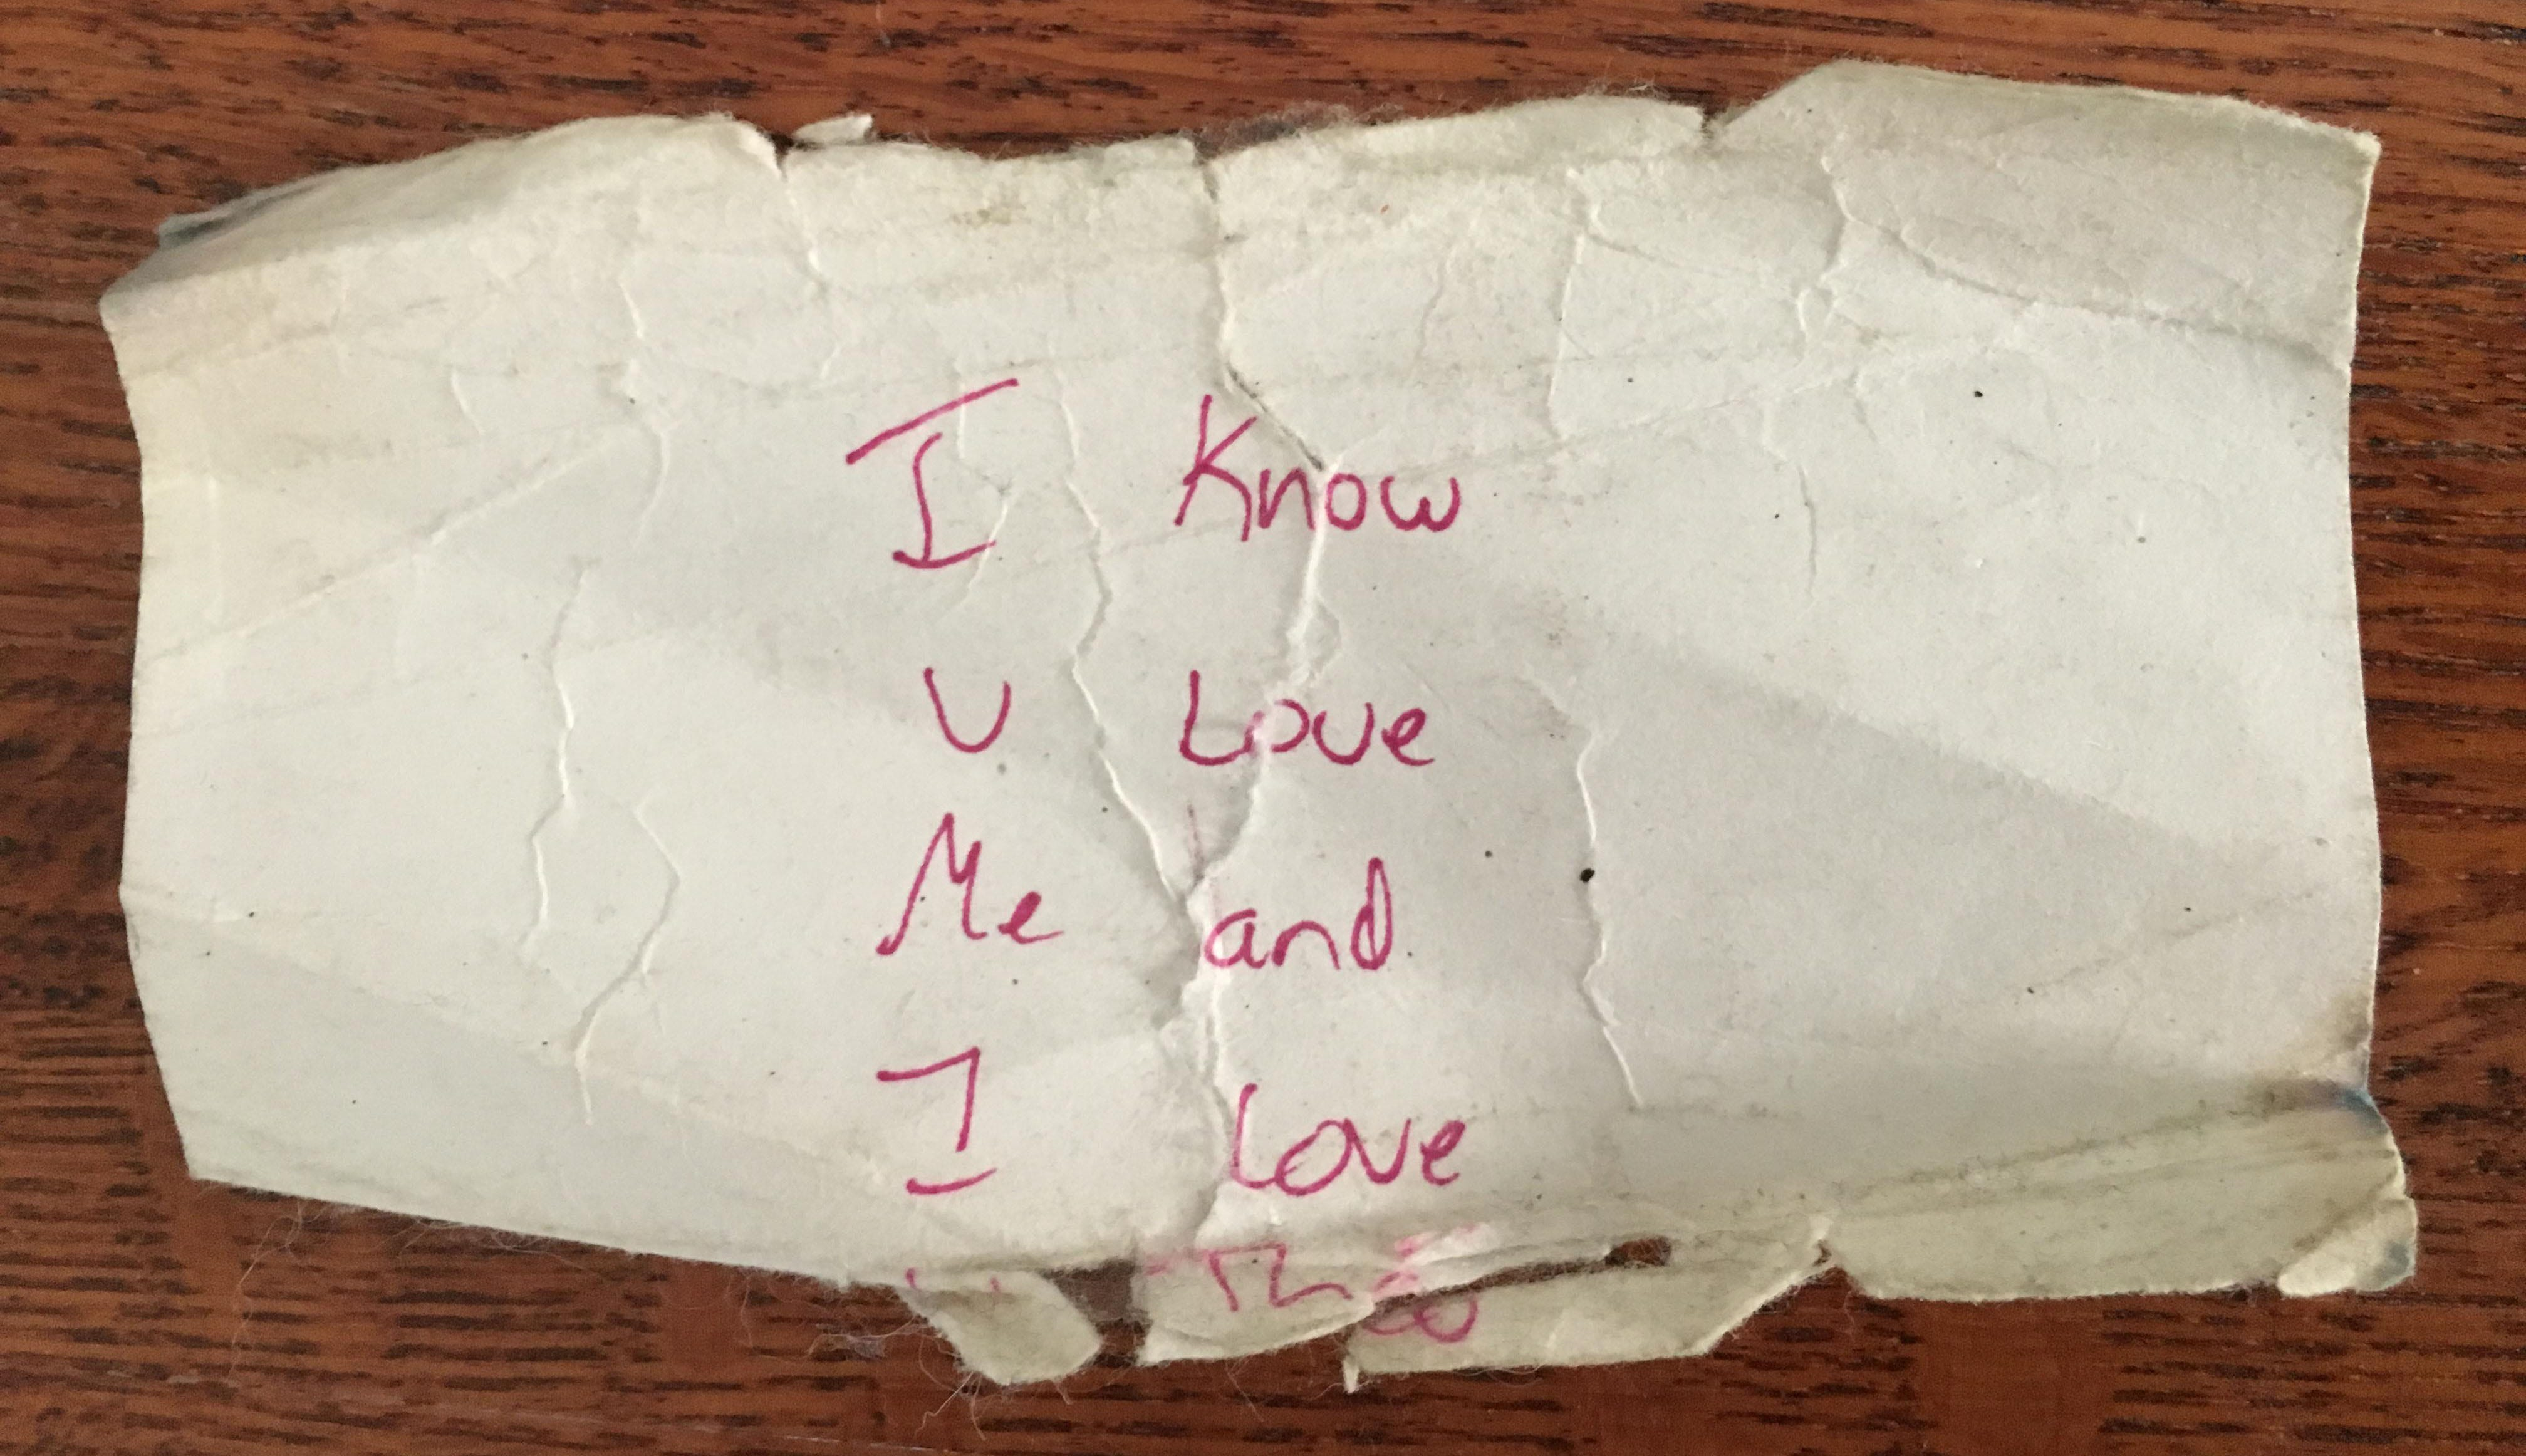 On a very bad afternoon, the summer after my mom died, when death seemed the only answer, my son Theo slipped this note into my purse before I left the house. I carried it in my wallet for years and now keep it on my dresser, a tiny piece of hope and love to see daily.